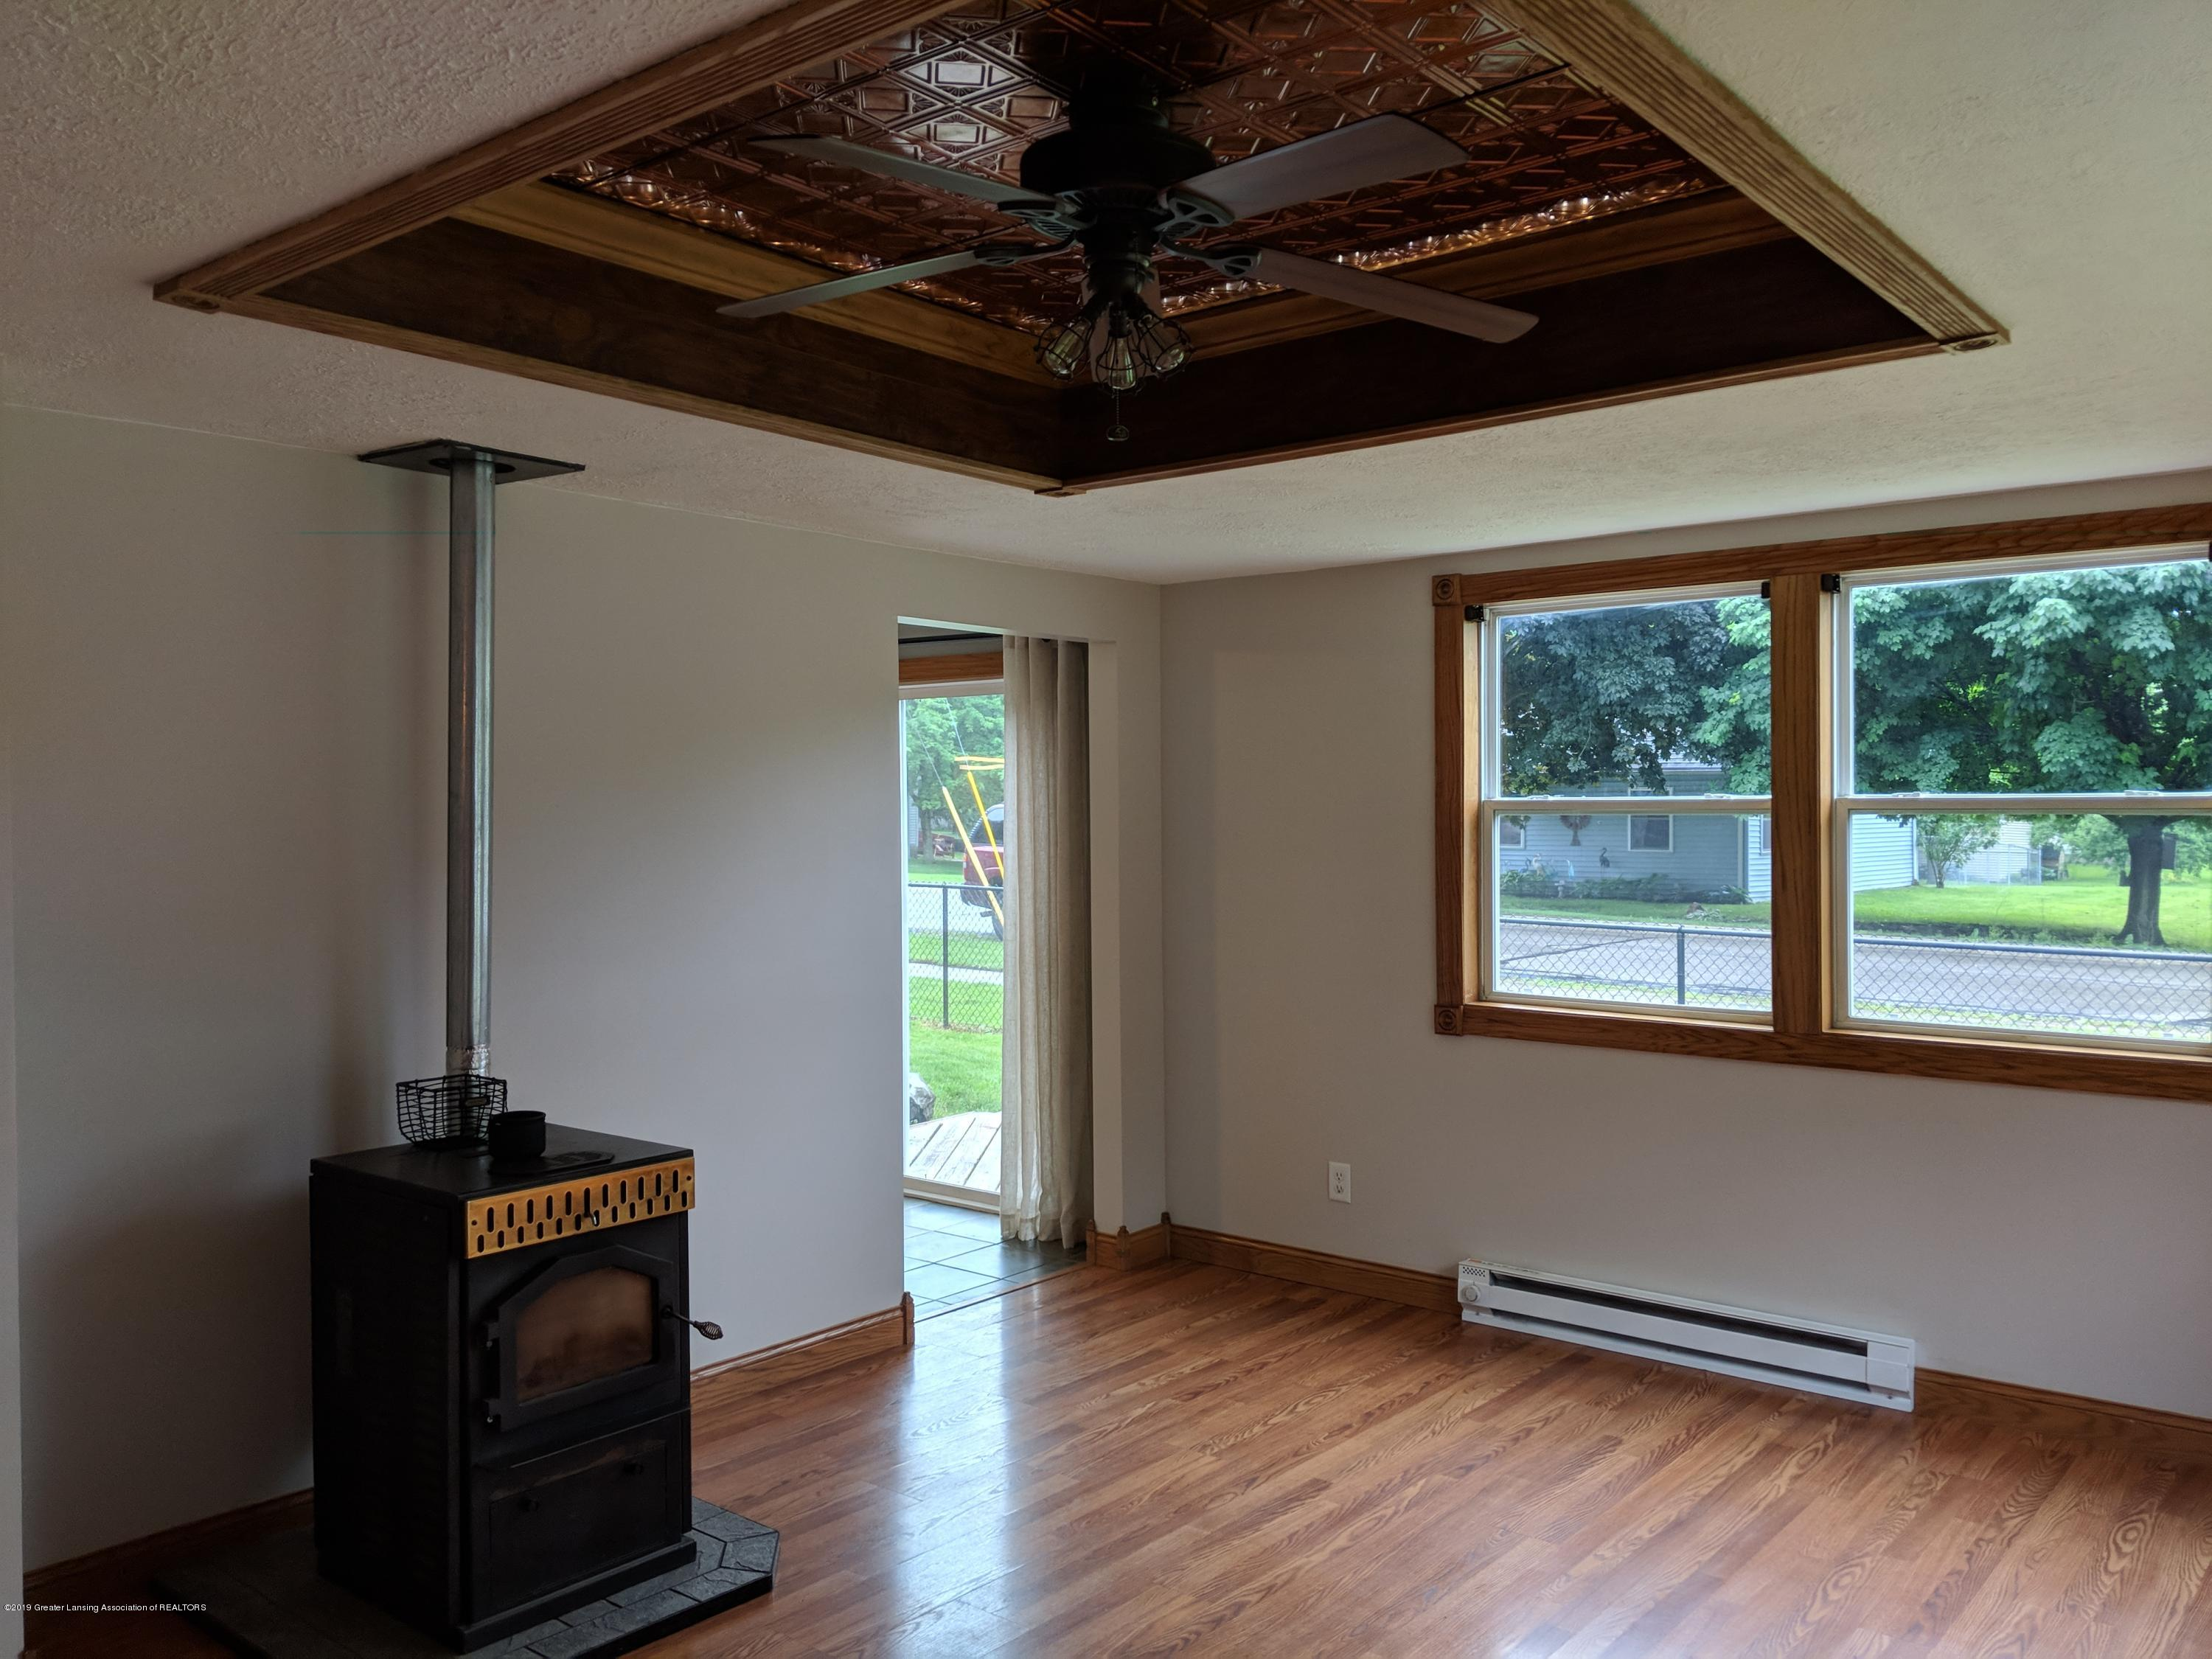 429 W Race St - Living room with custom tray ceiling - 13